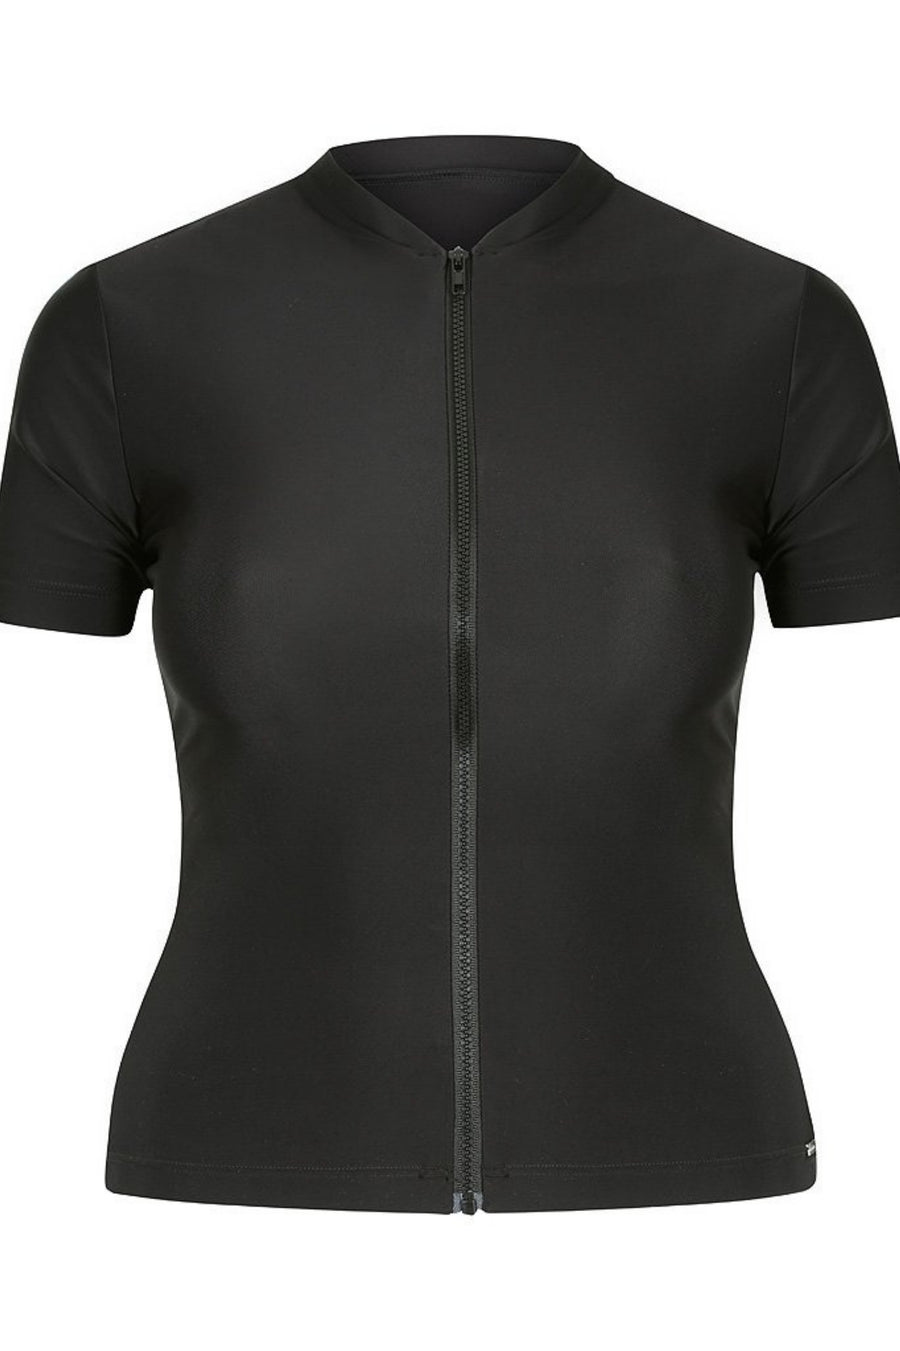 women's short sleeve rash guard